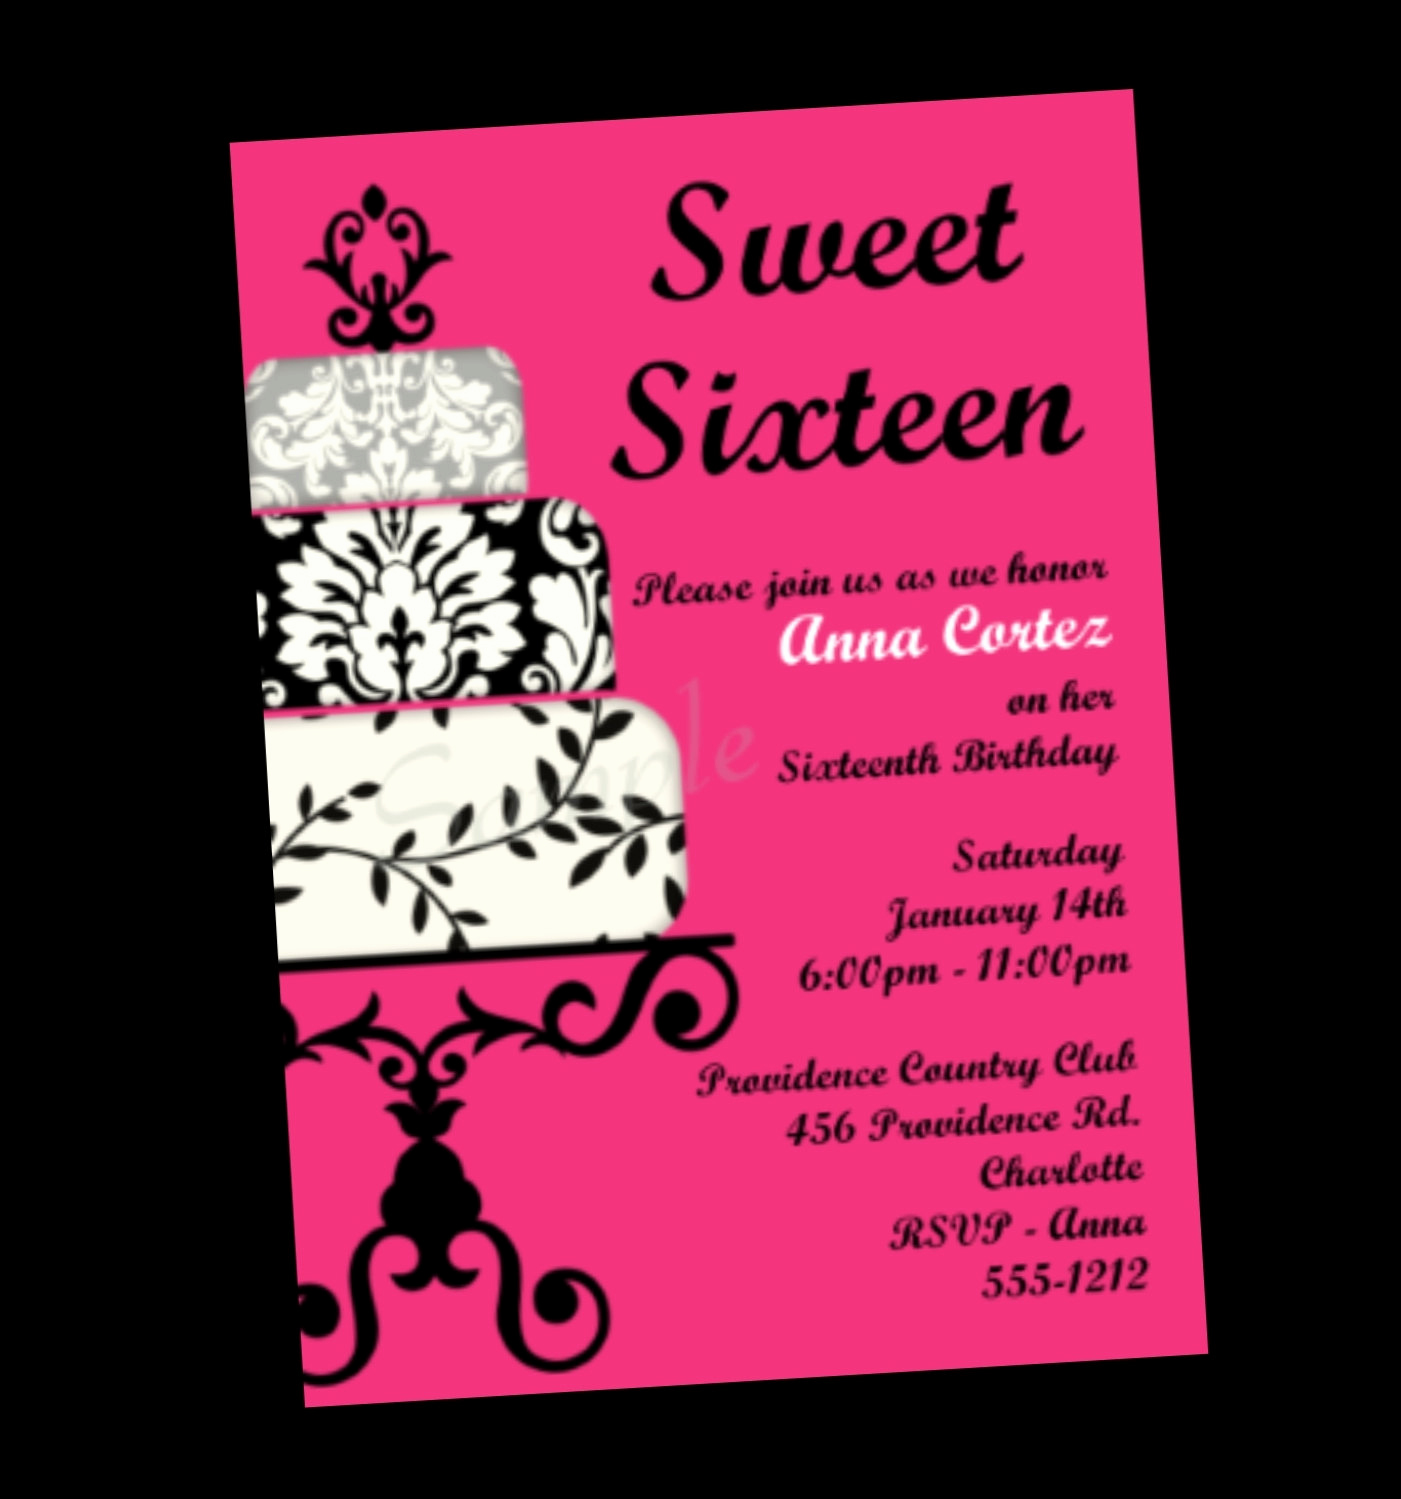 Sweet 16 Invitation Templates Inspirational Sweet 16 Invitation Quotes Quotesgram